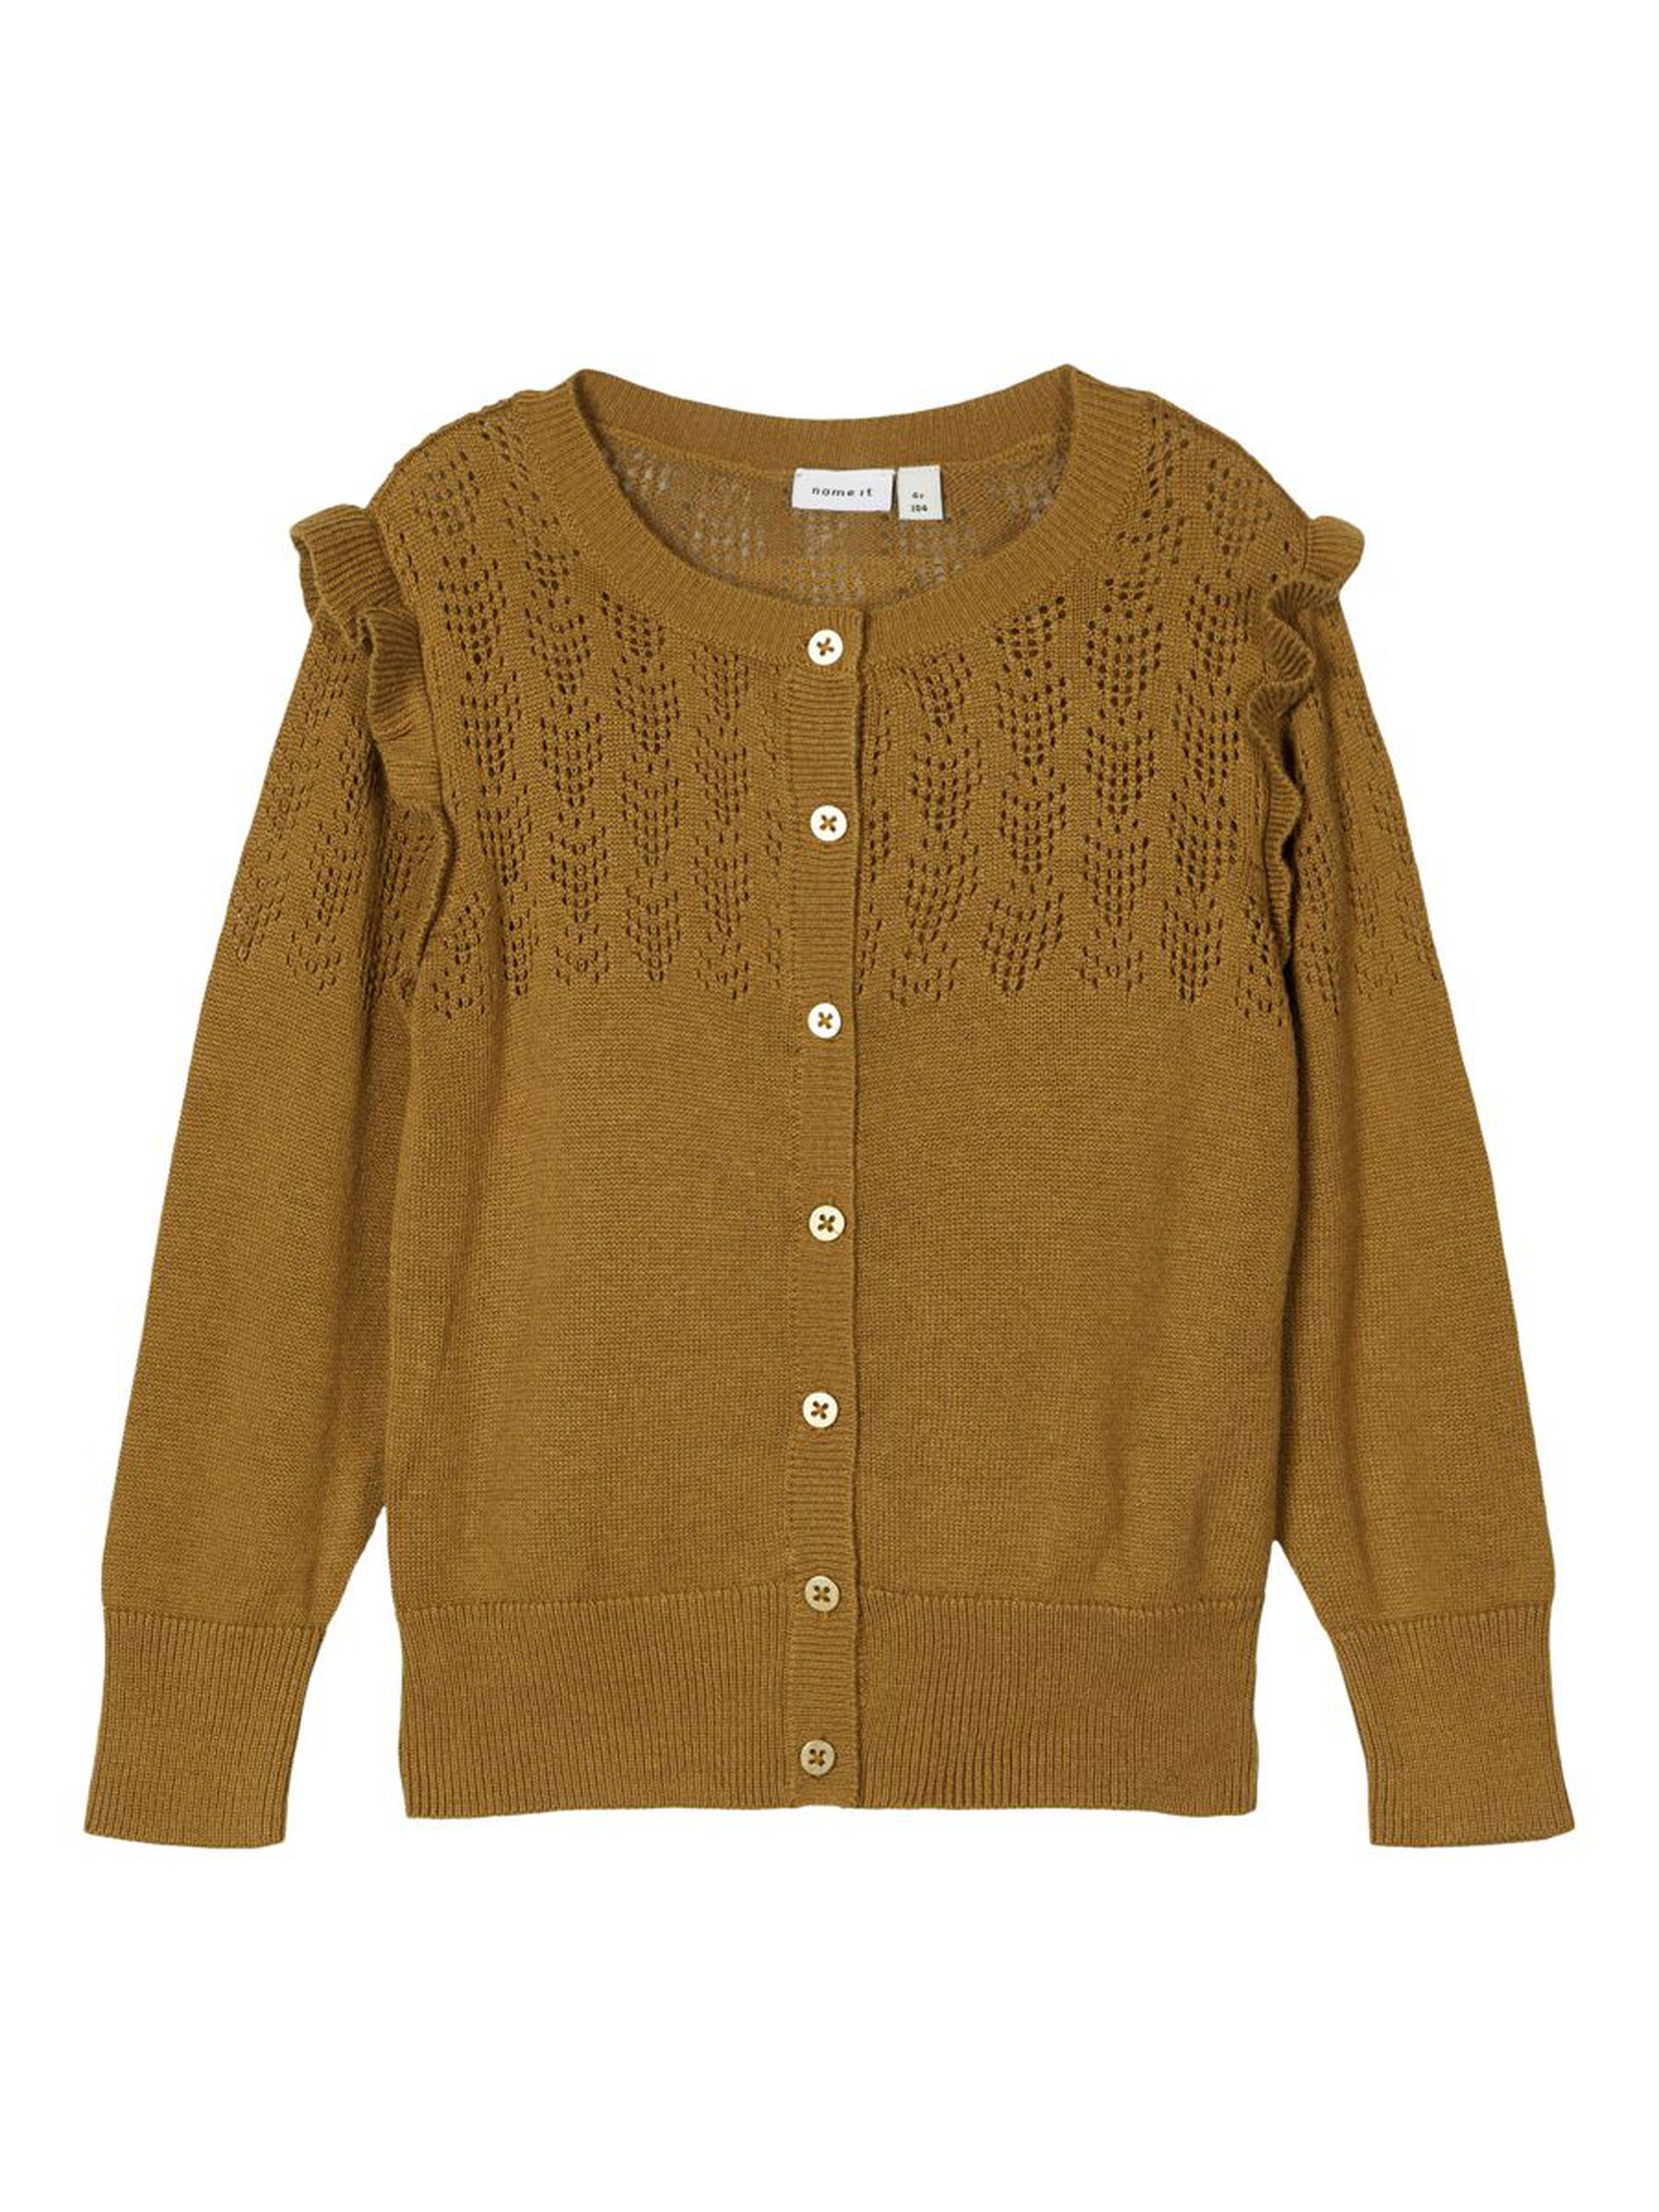 Brun strikkejakke til barn – Name It brun cardigan Onamin – Mio Trend